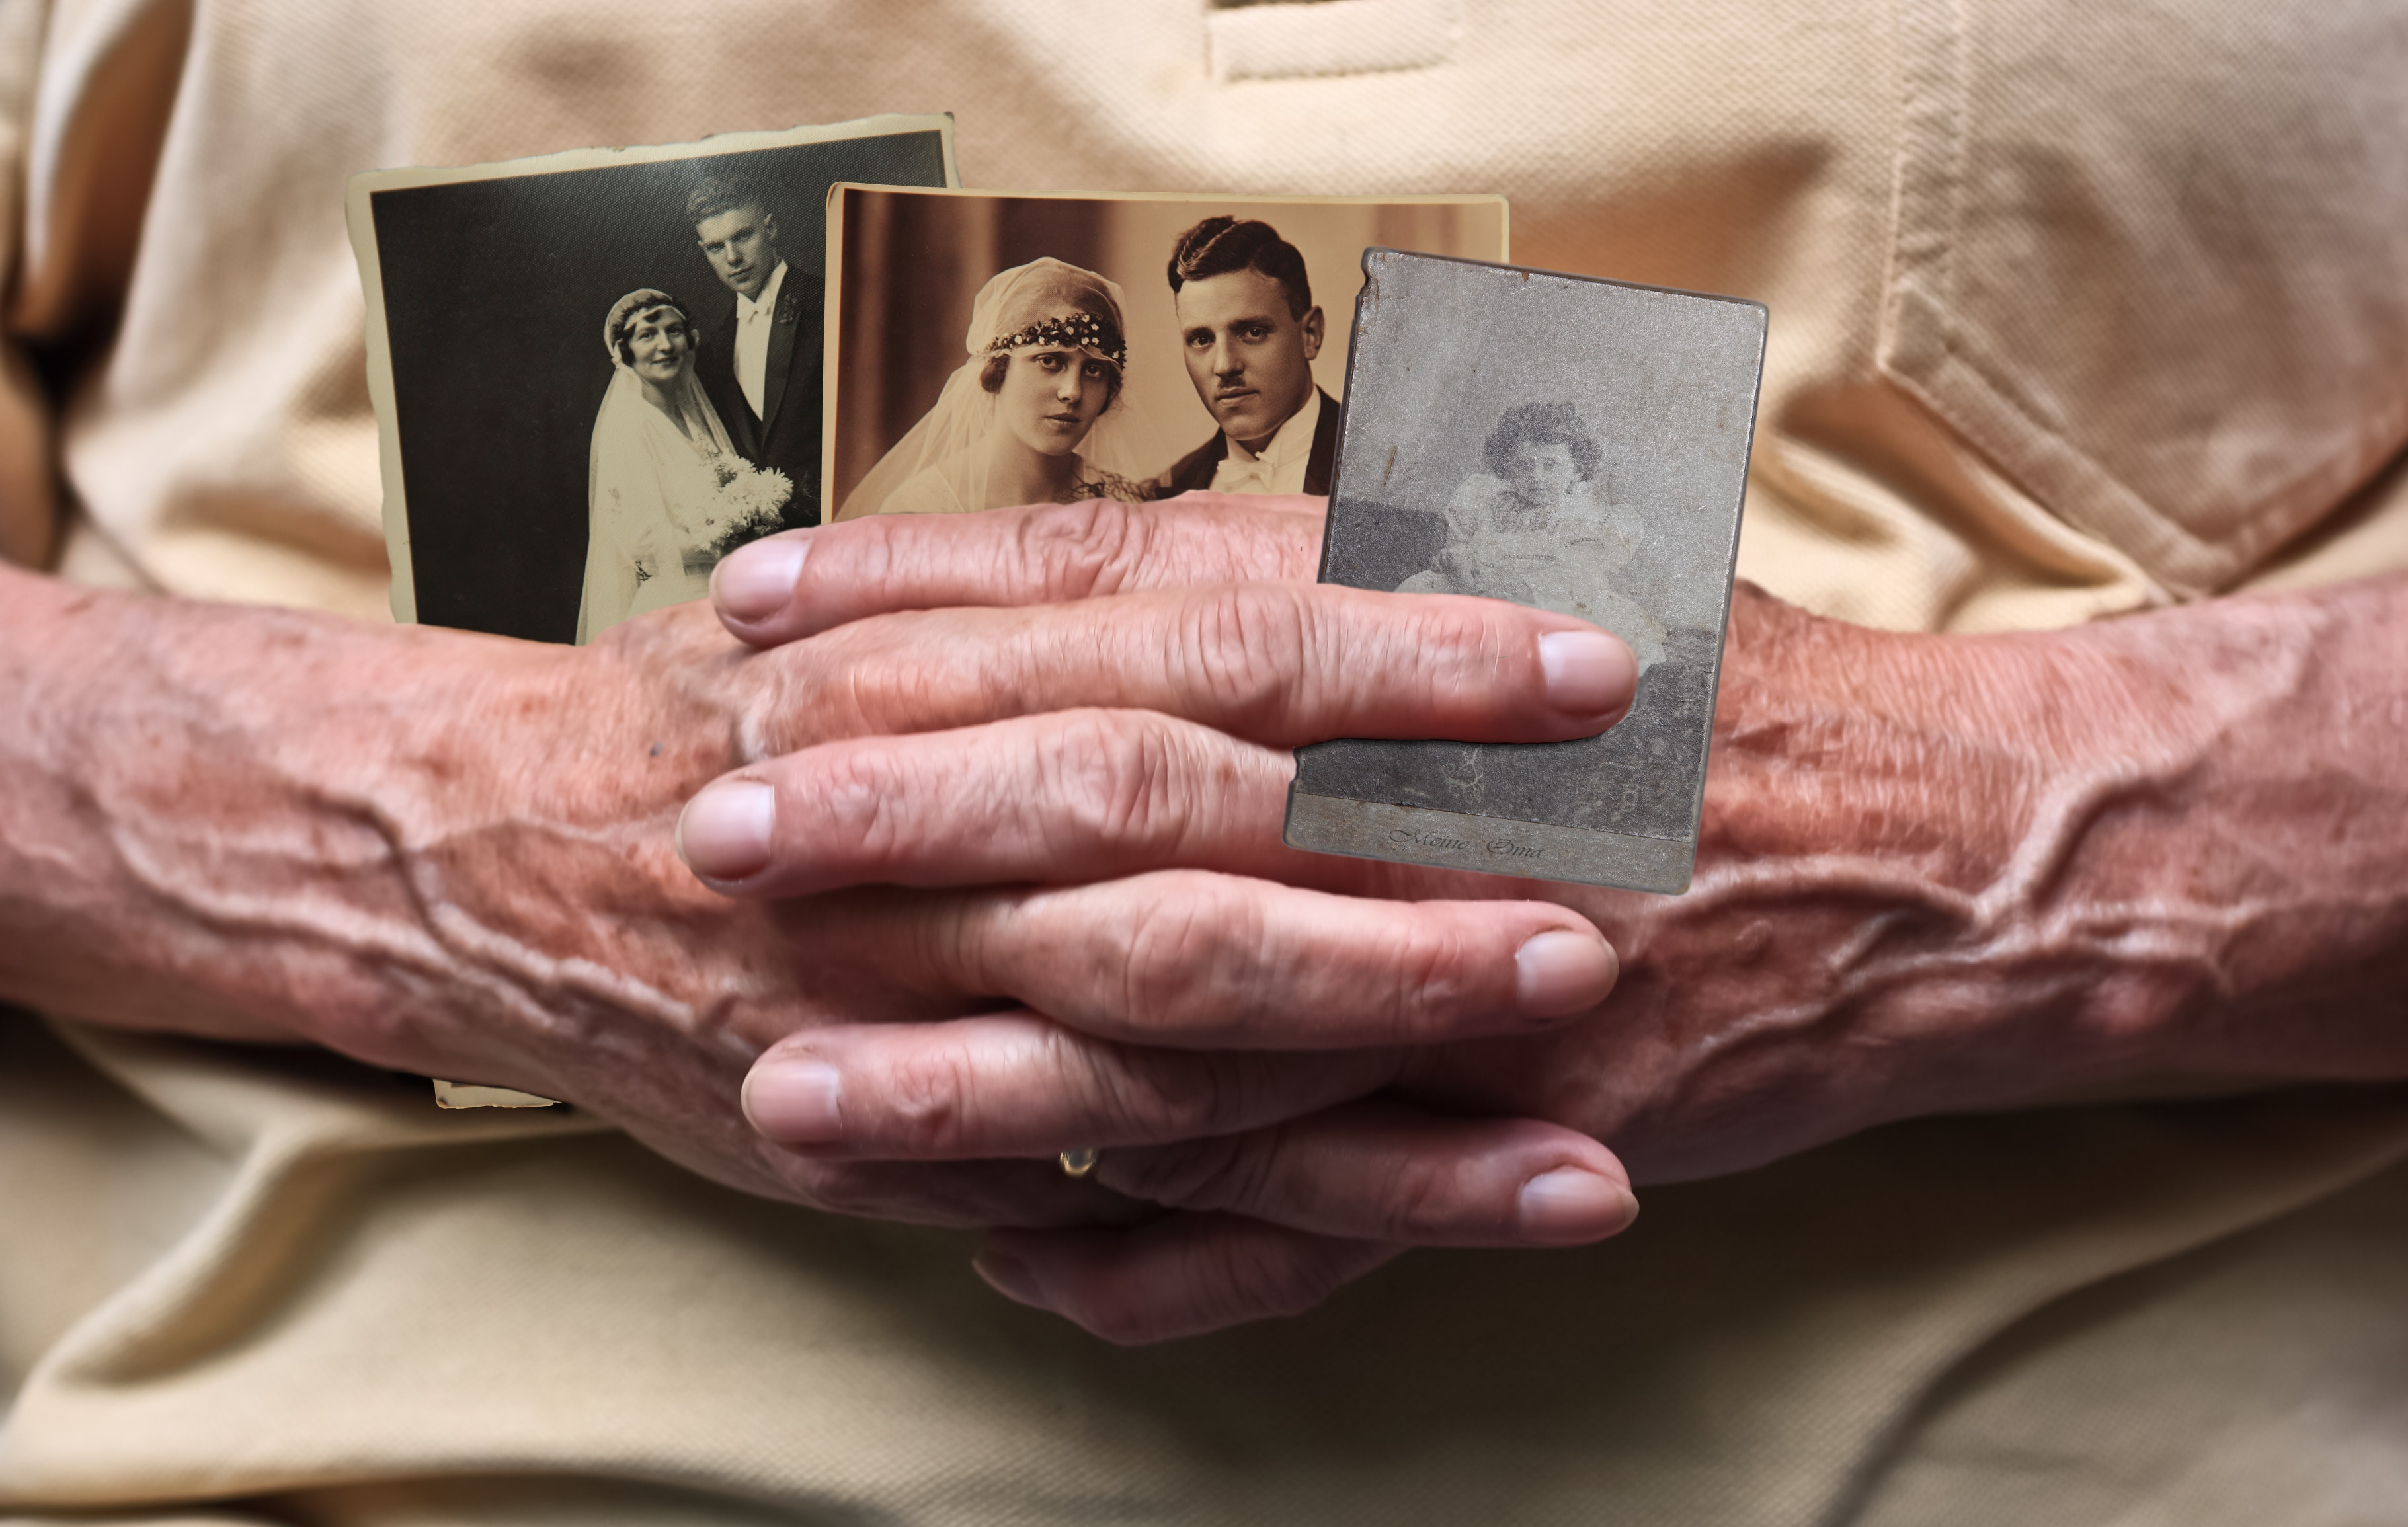 Debunking 7 common myths about Alzheimer's disease